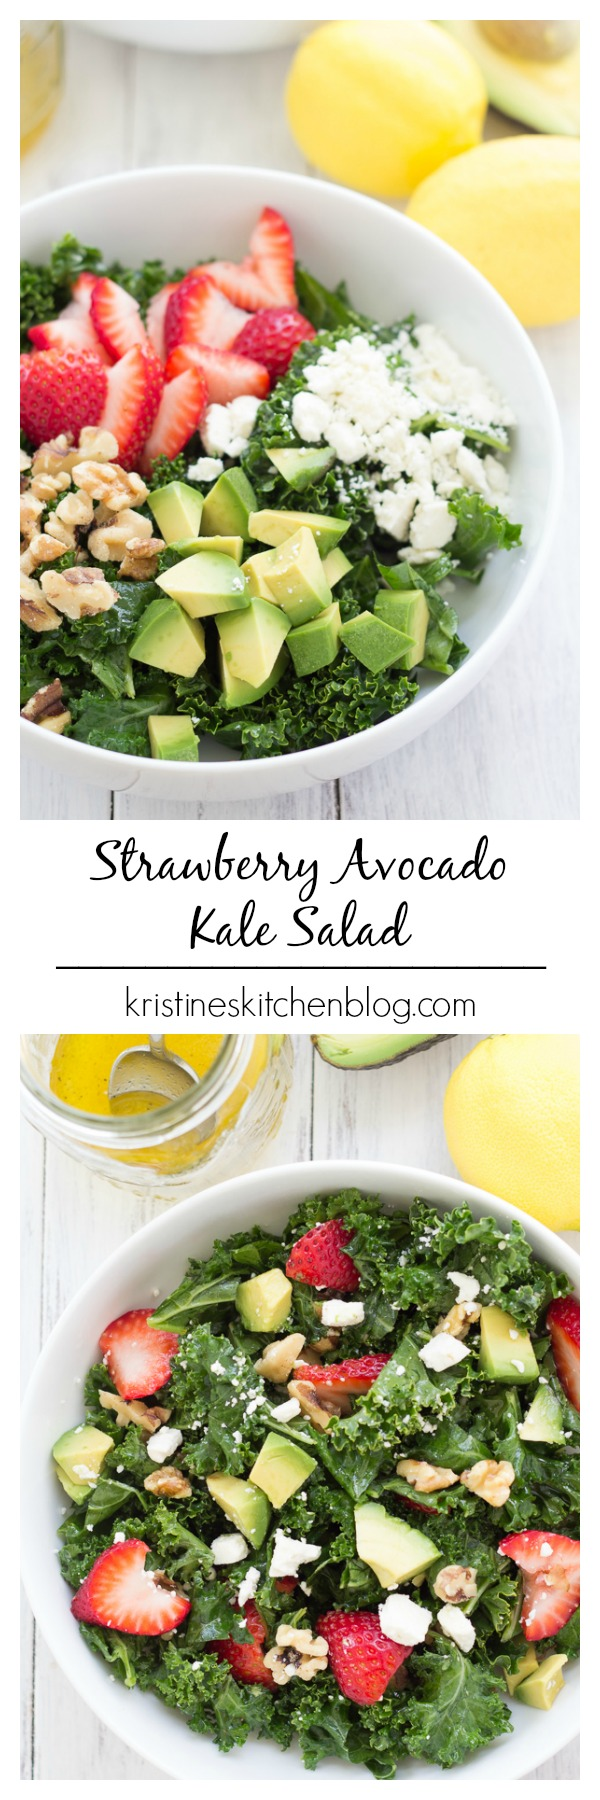 This Strawberry Avocado Kale Salad is healthy and packed with flavor!